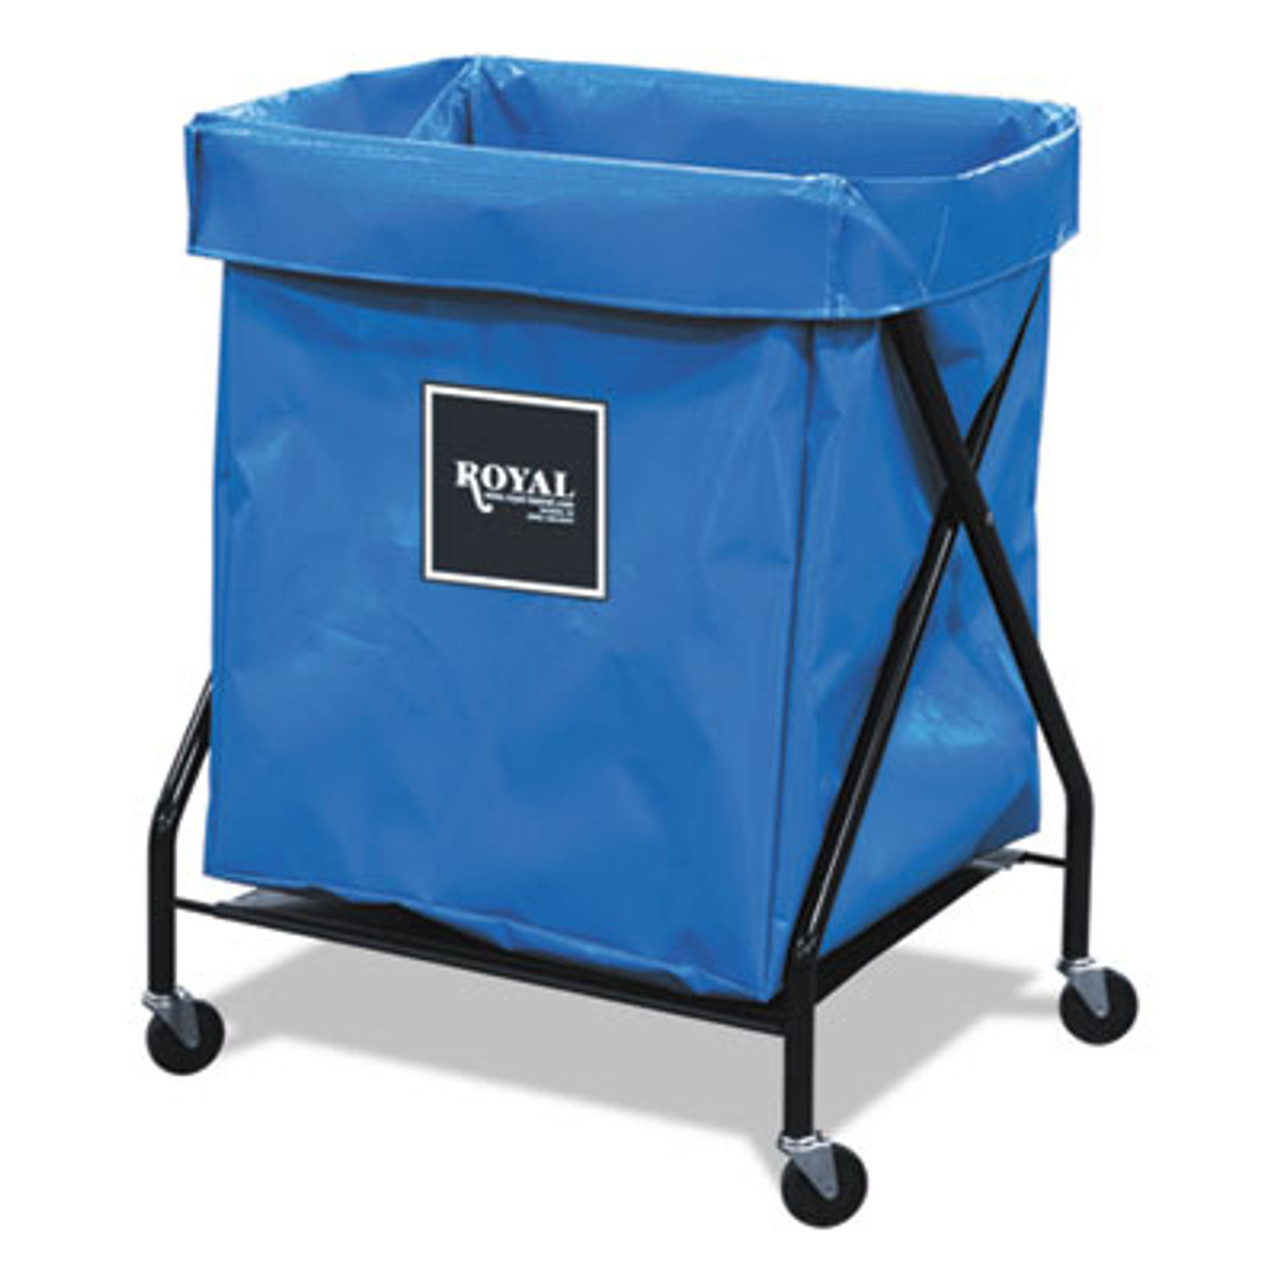 Royal 8 Bushel X-Frame Cart with Vinyl Bag, 21 x 26 x 36, 150 lbs. Capacity, Blue